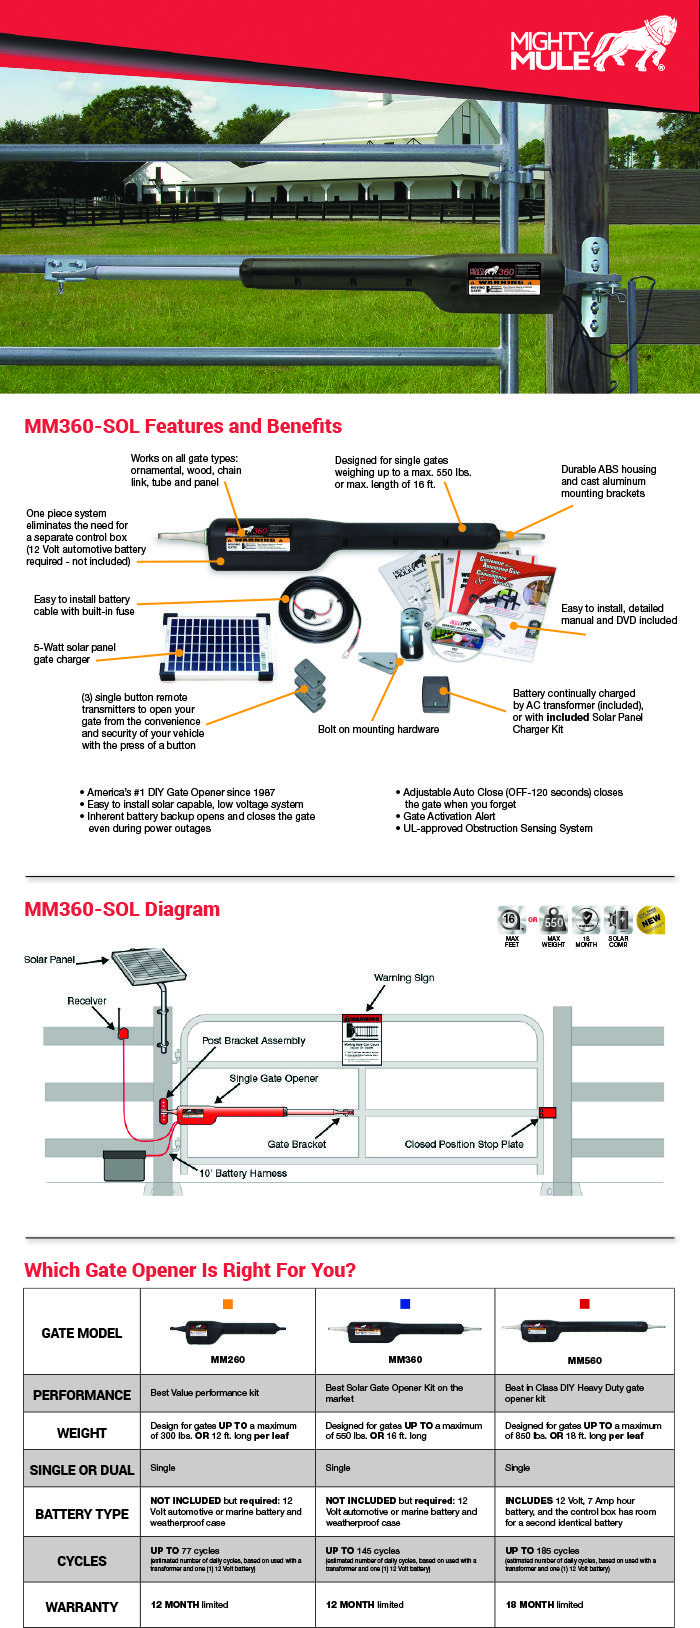 Mighty Mule Medium Duty Single Swing Automatic Gate Opener Solar Saver Package Mm360 Sol The Home Depot Automatic Gate Opener Automatic Gate Single Swing